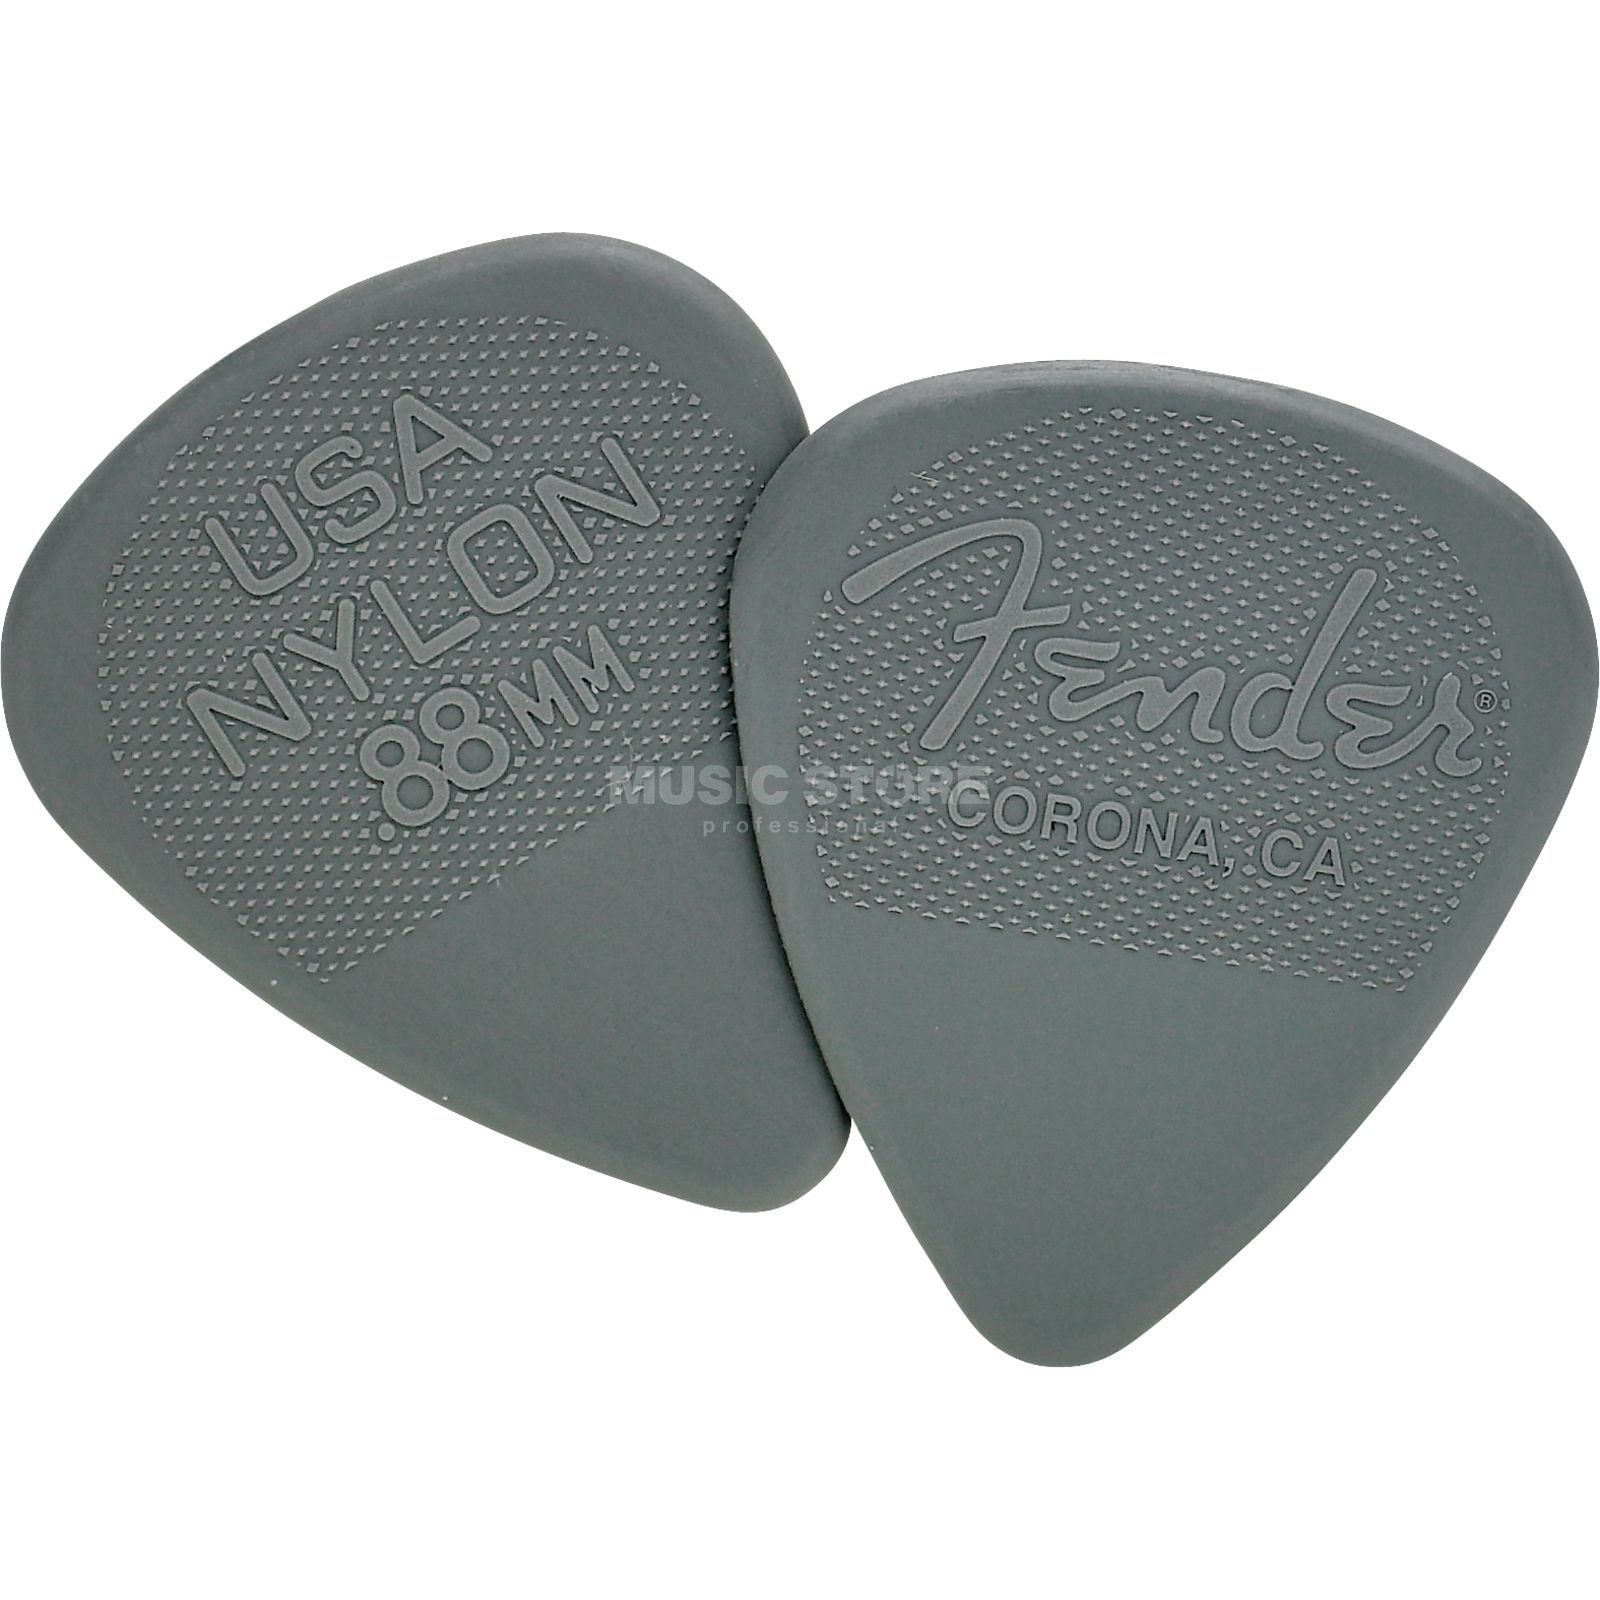 Fender Nylon Picks 12er Set 0,88 Produktbild